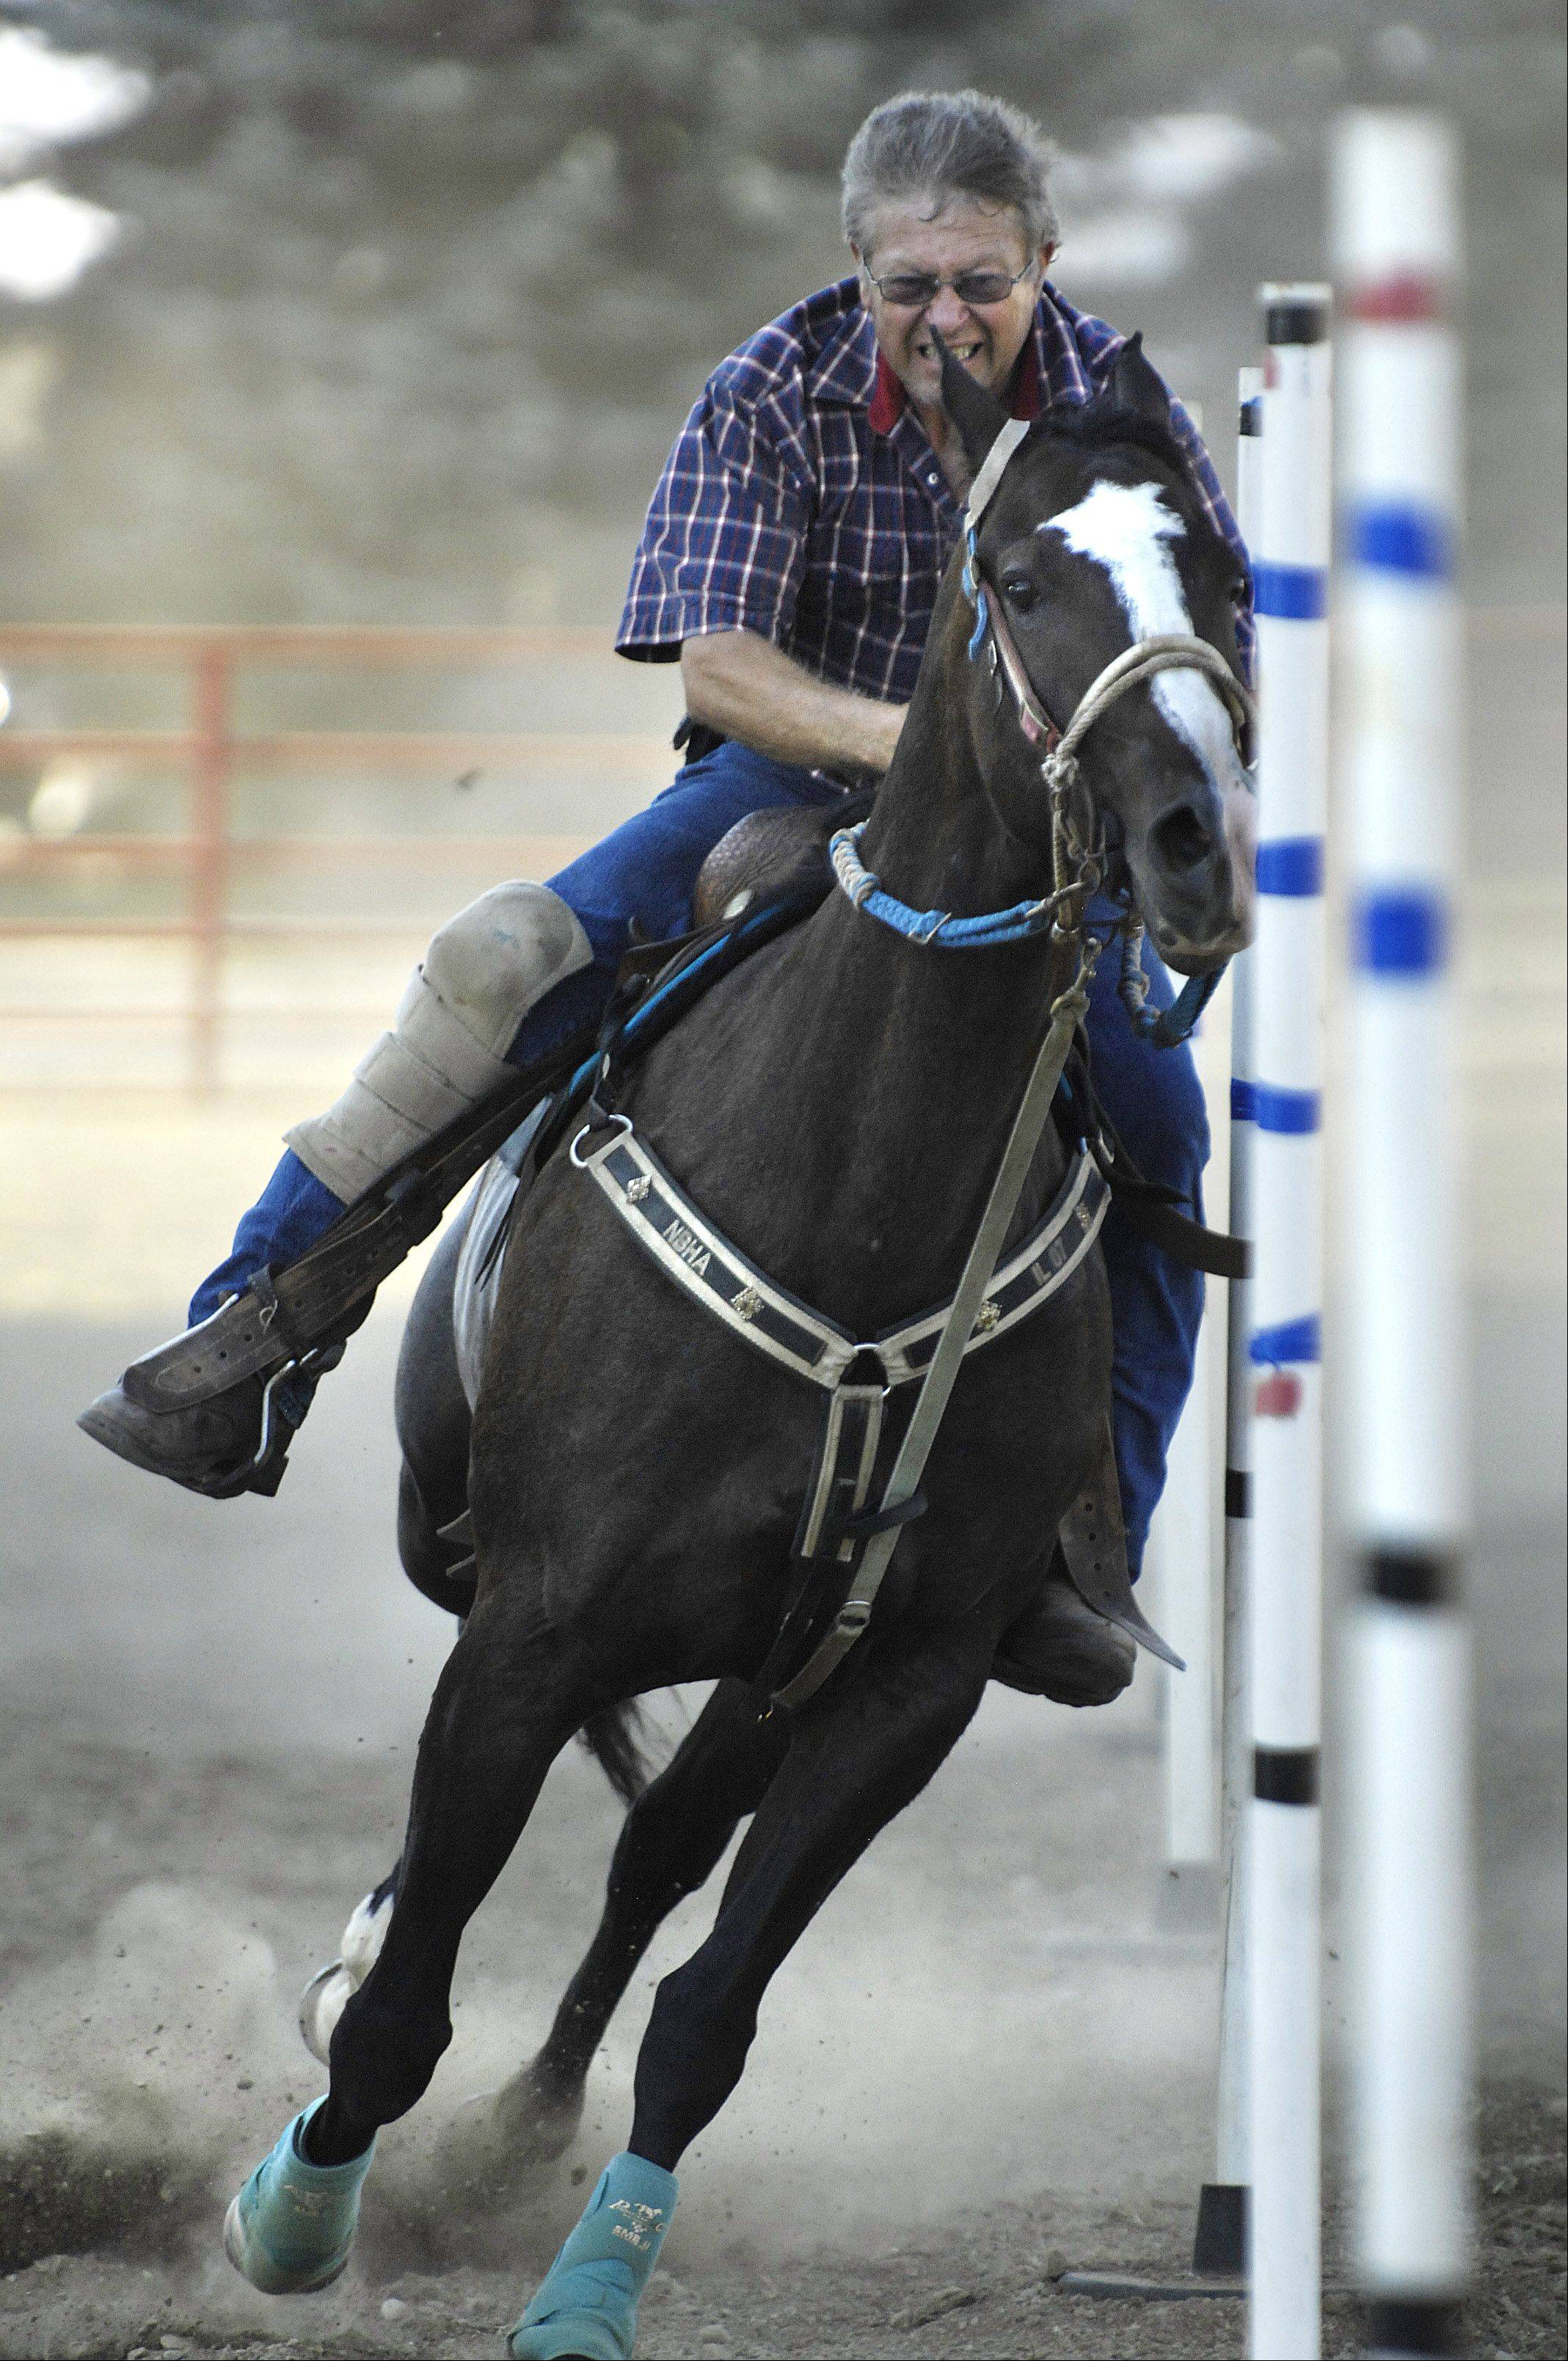 Chuck Springer of Byron steers his horse through a pole bending competition in the grandstand arena.